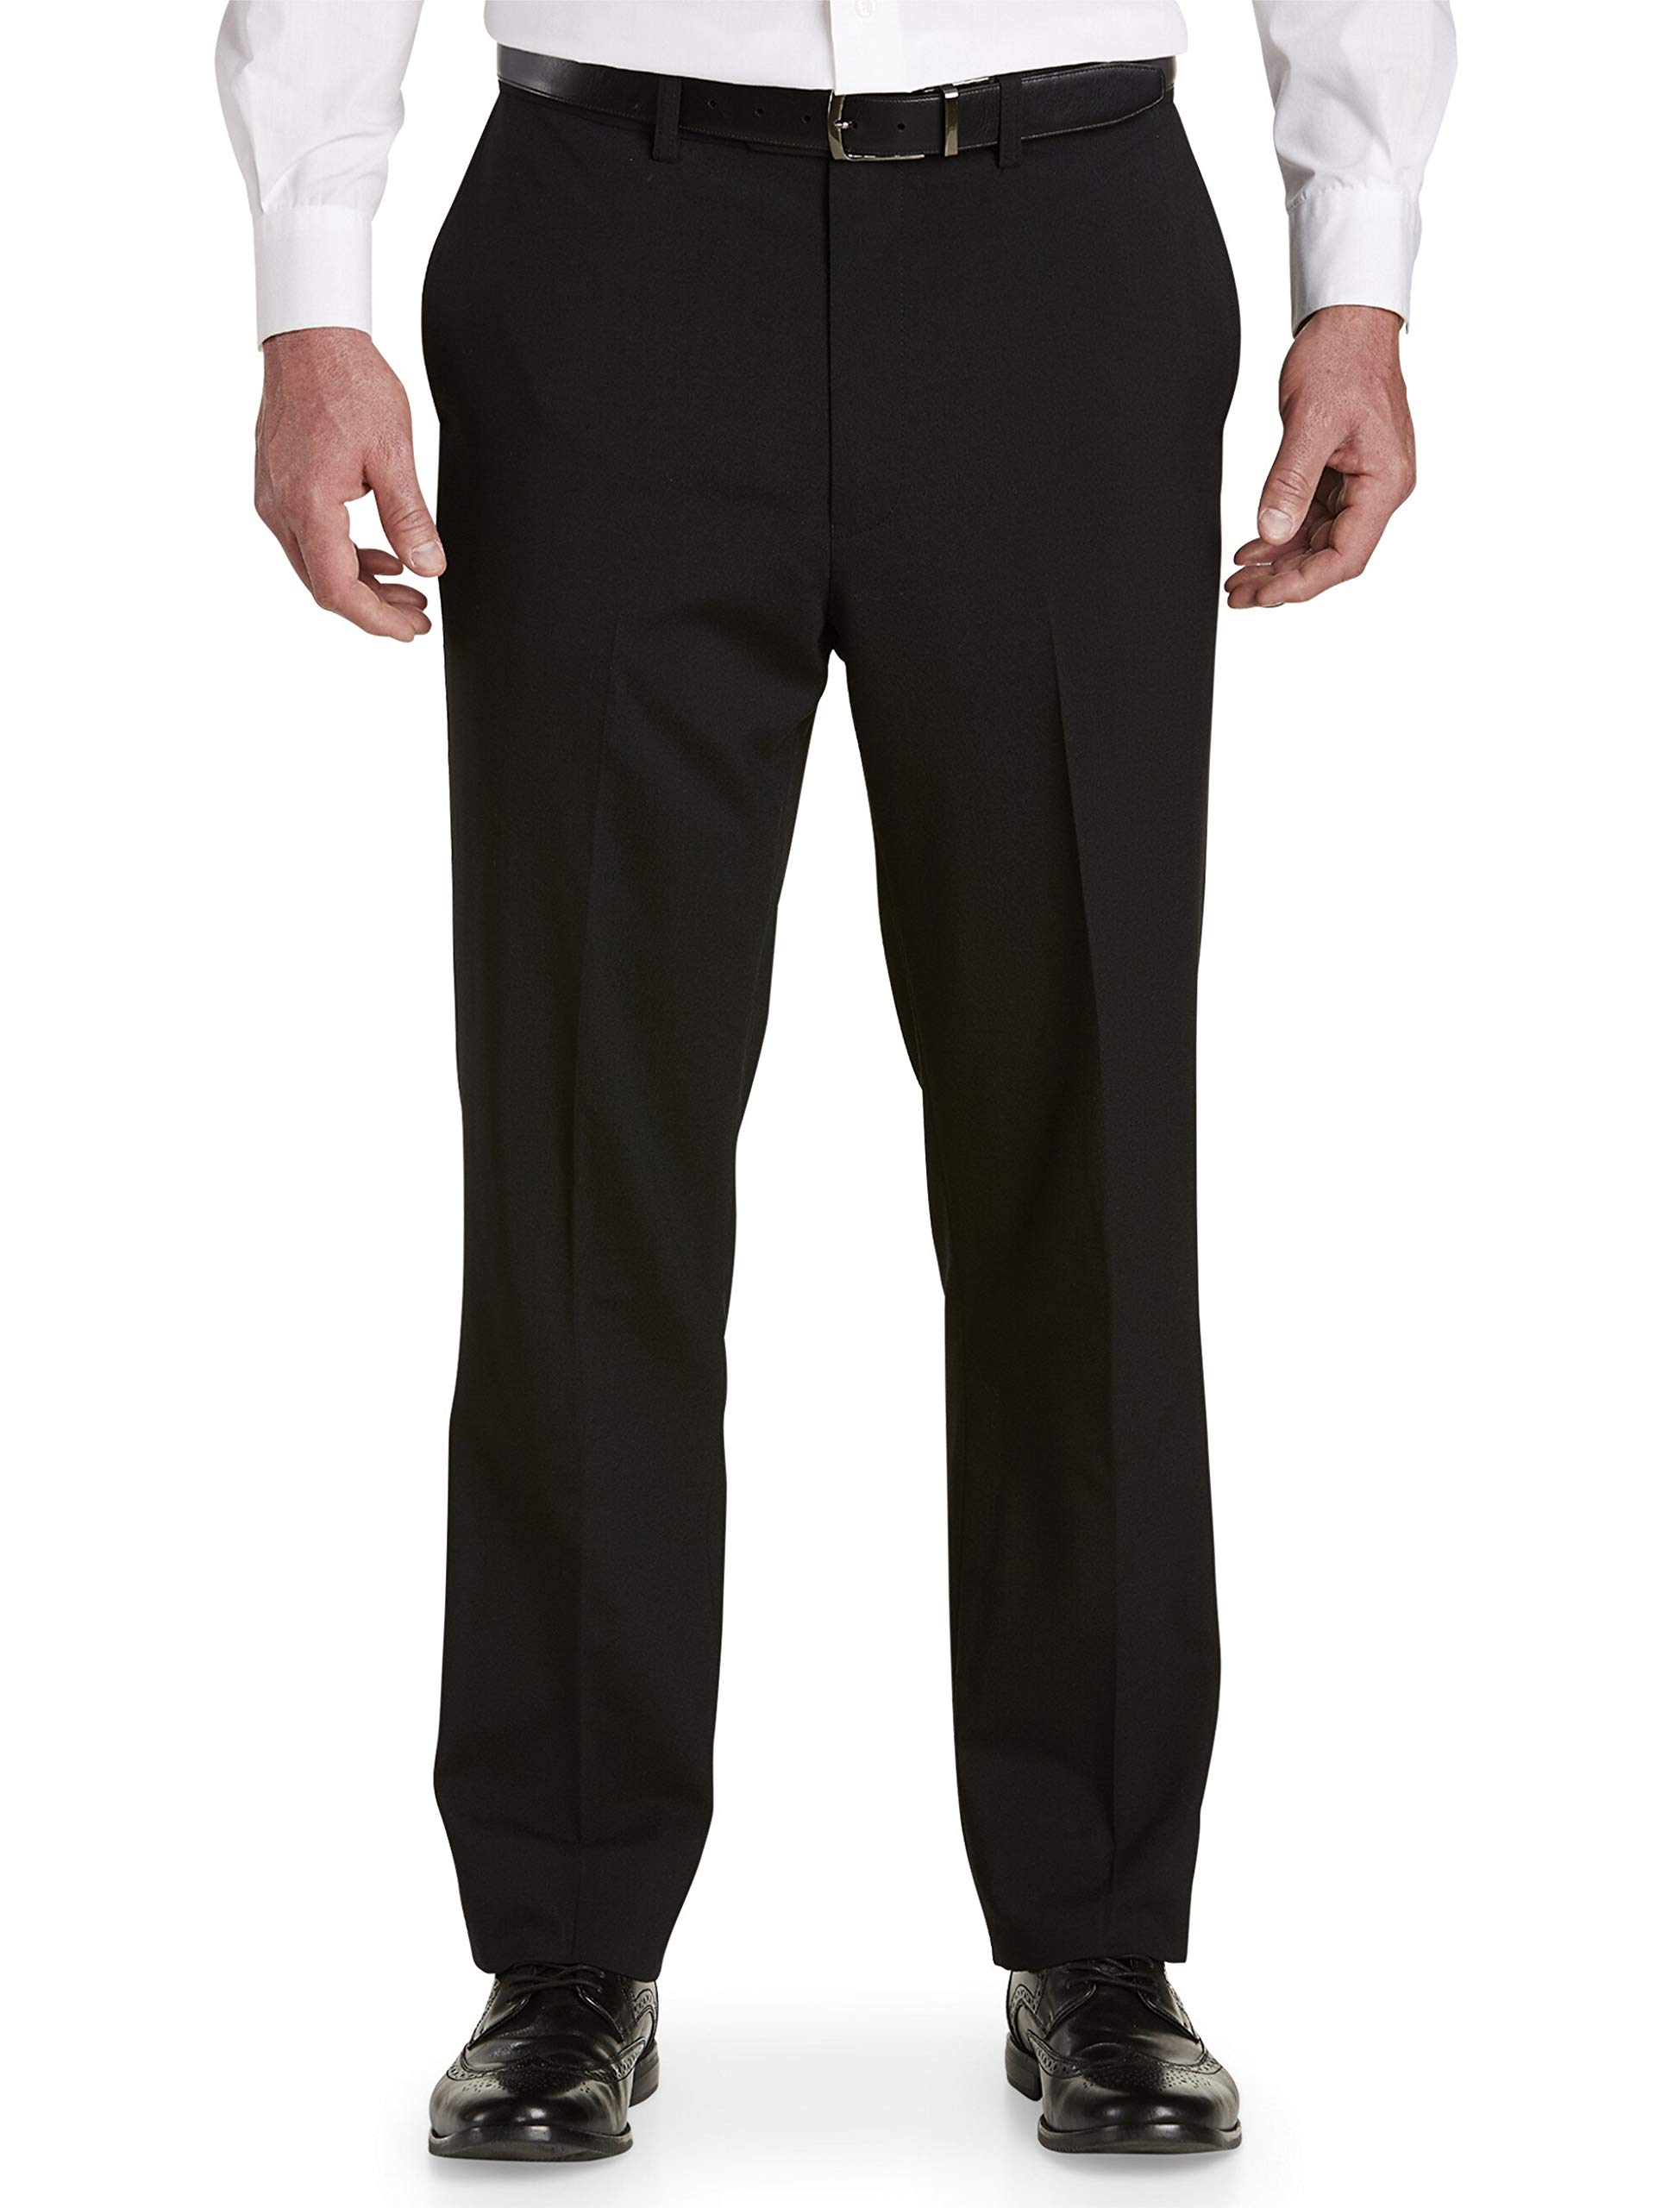 DXL Gold Series Big and Tall Waist-Relaxer Unfinished Flat-Front Suit Pants, Black, 50R UNF by DXL